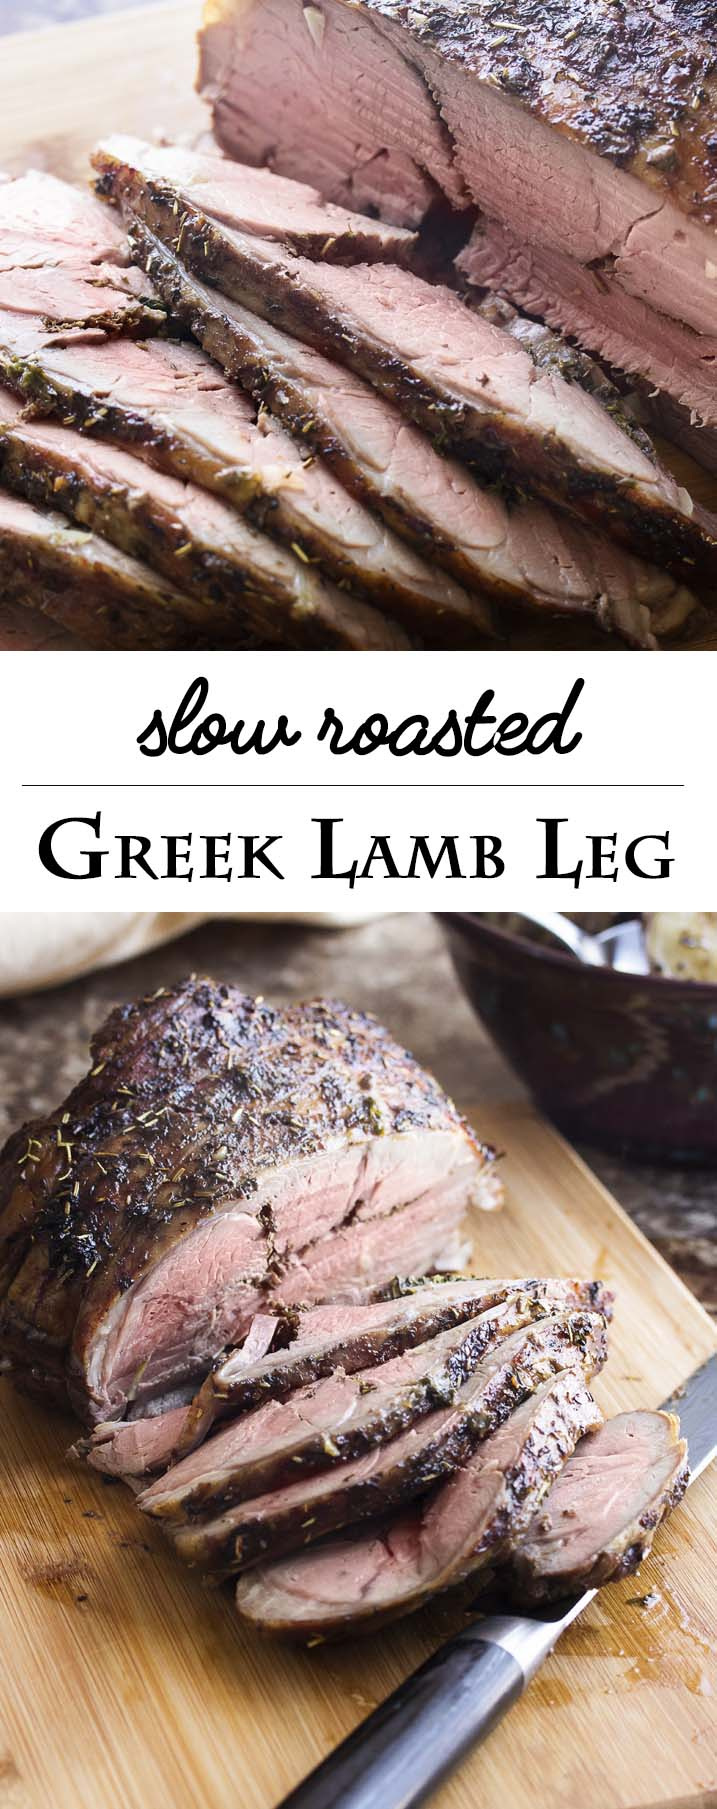 Keep the oven temperature low for a low-stress slow roasted Greek lamb leg which is tender and juicy and pink all the way through! Add some potatoes to the pan for a great, Greek-style meal. | justalittlebitofbacon.com